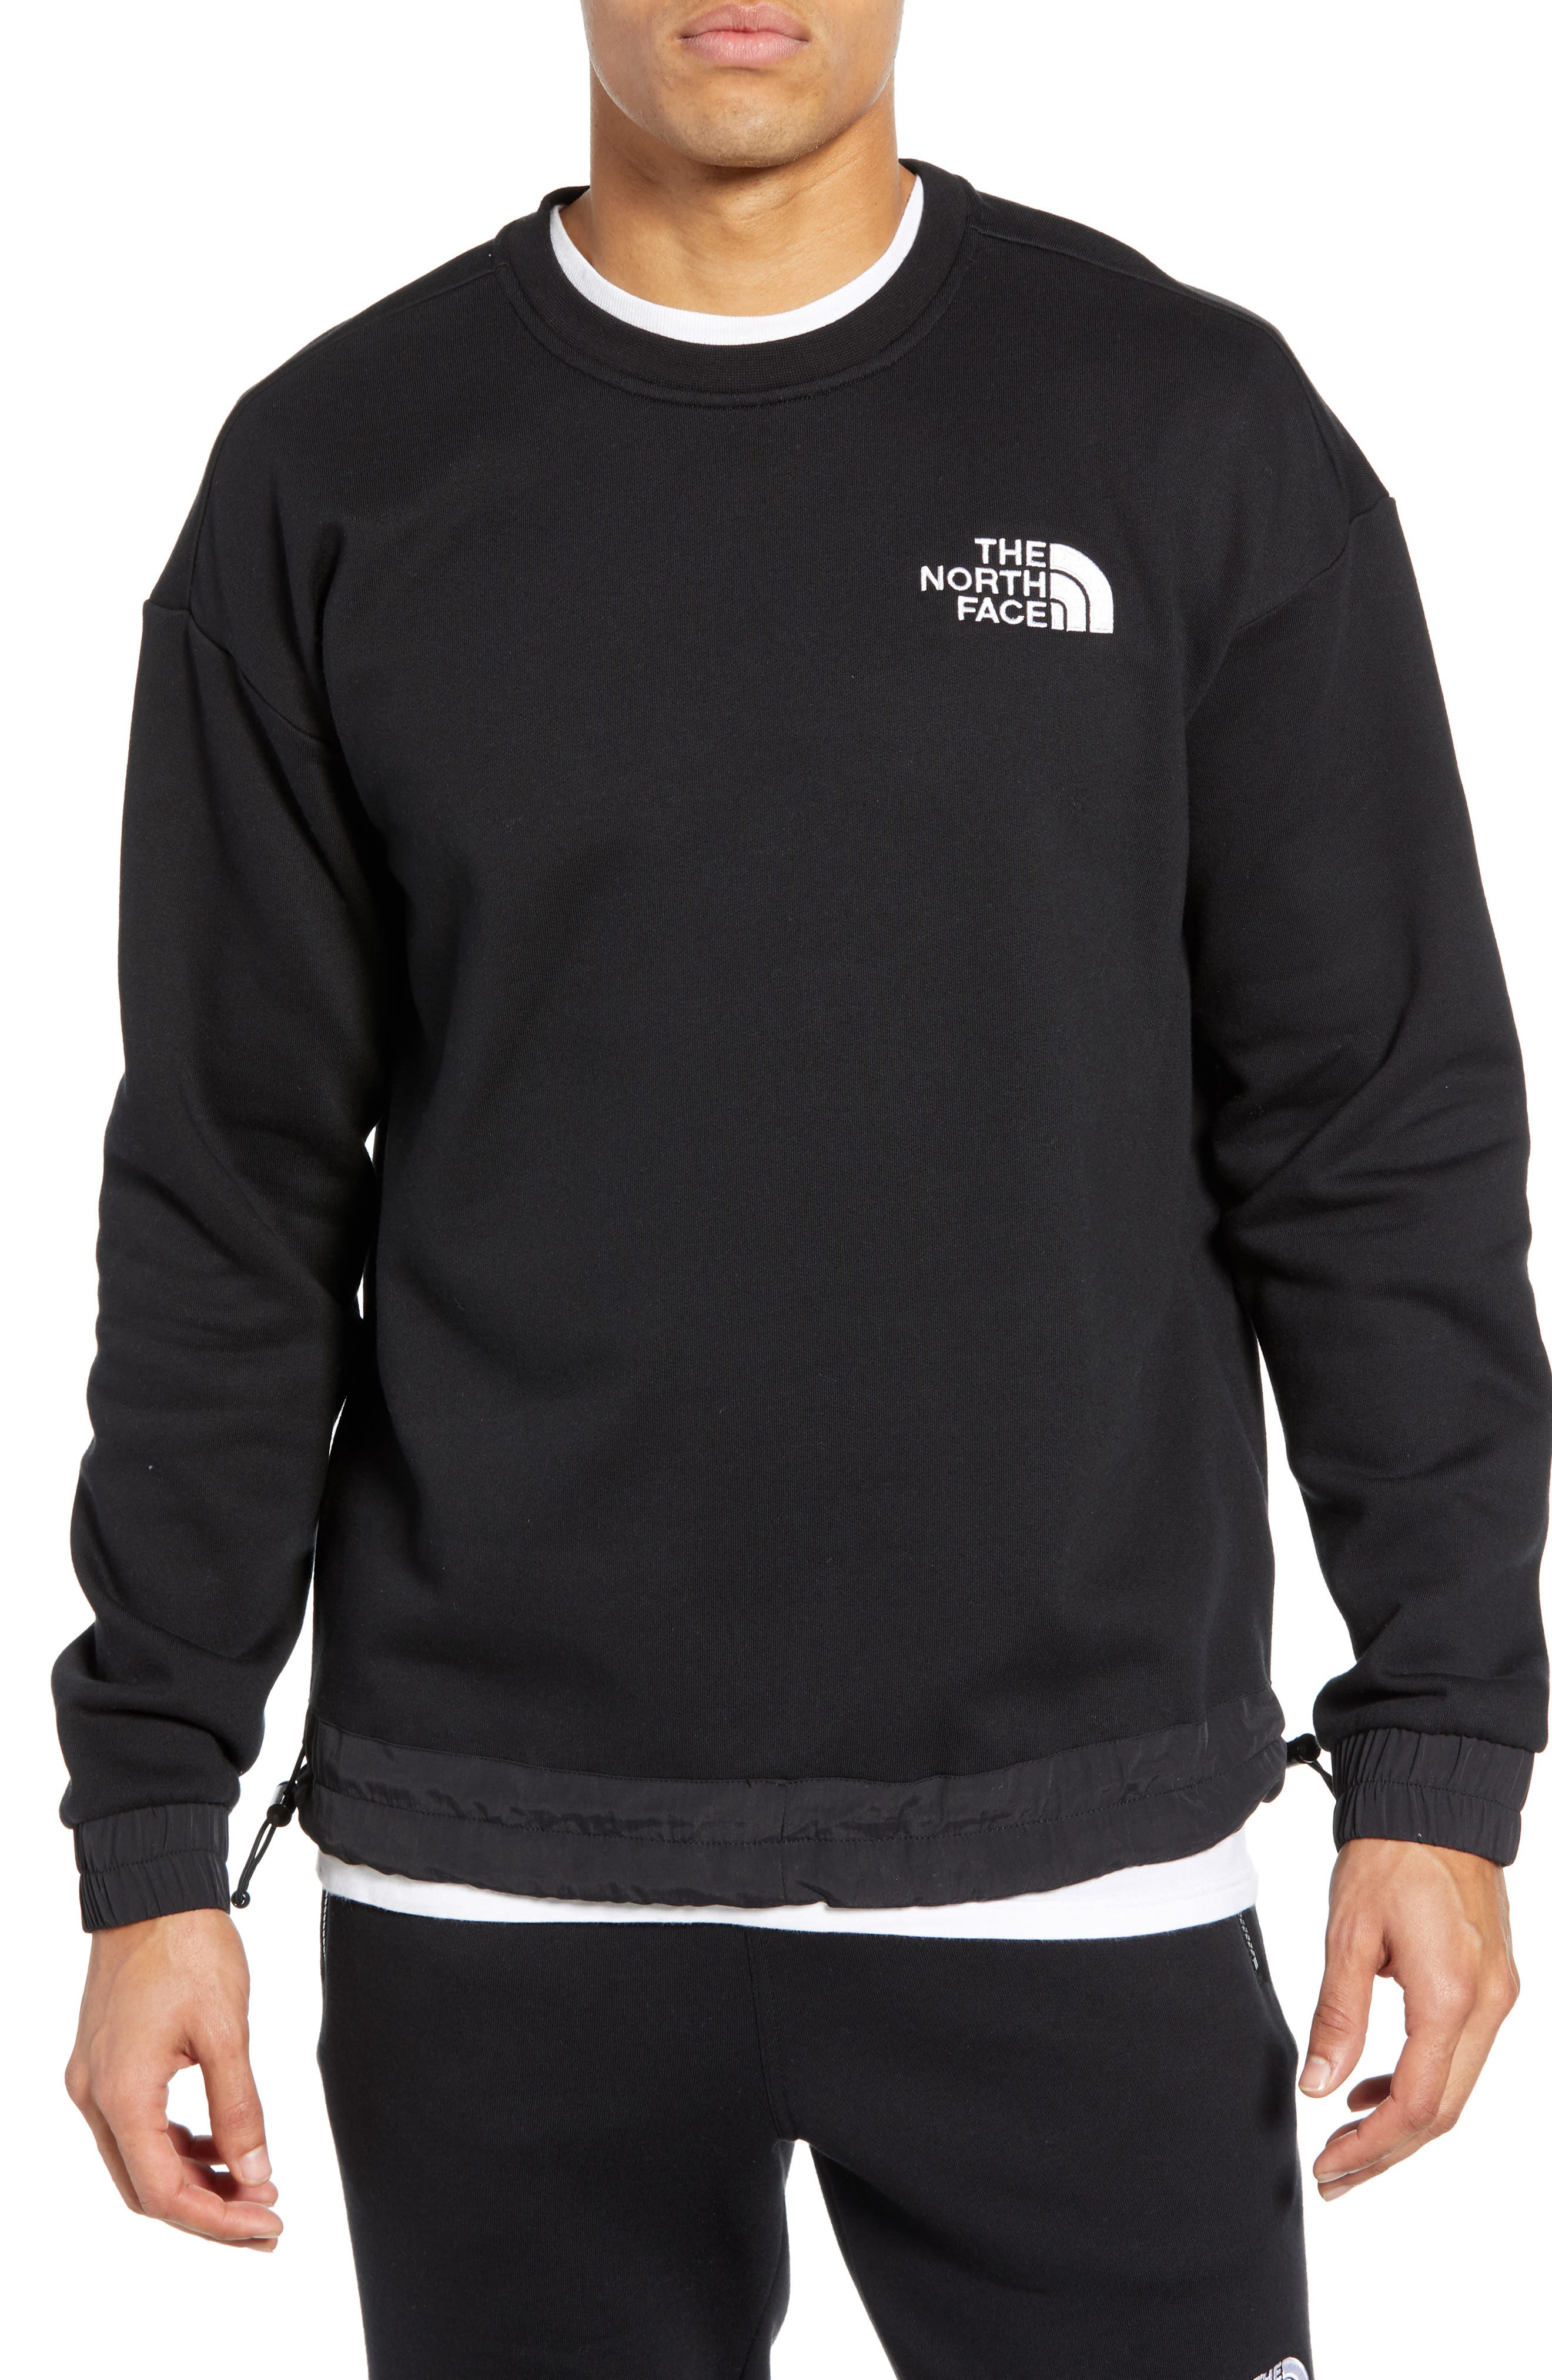 THE NORTH FACE 1992 Rage Collection Sweatshirt, Main, color, 001